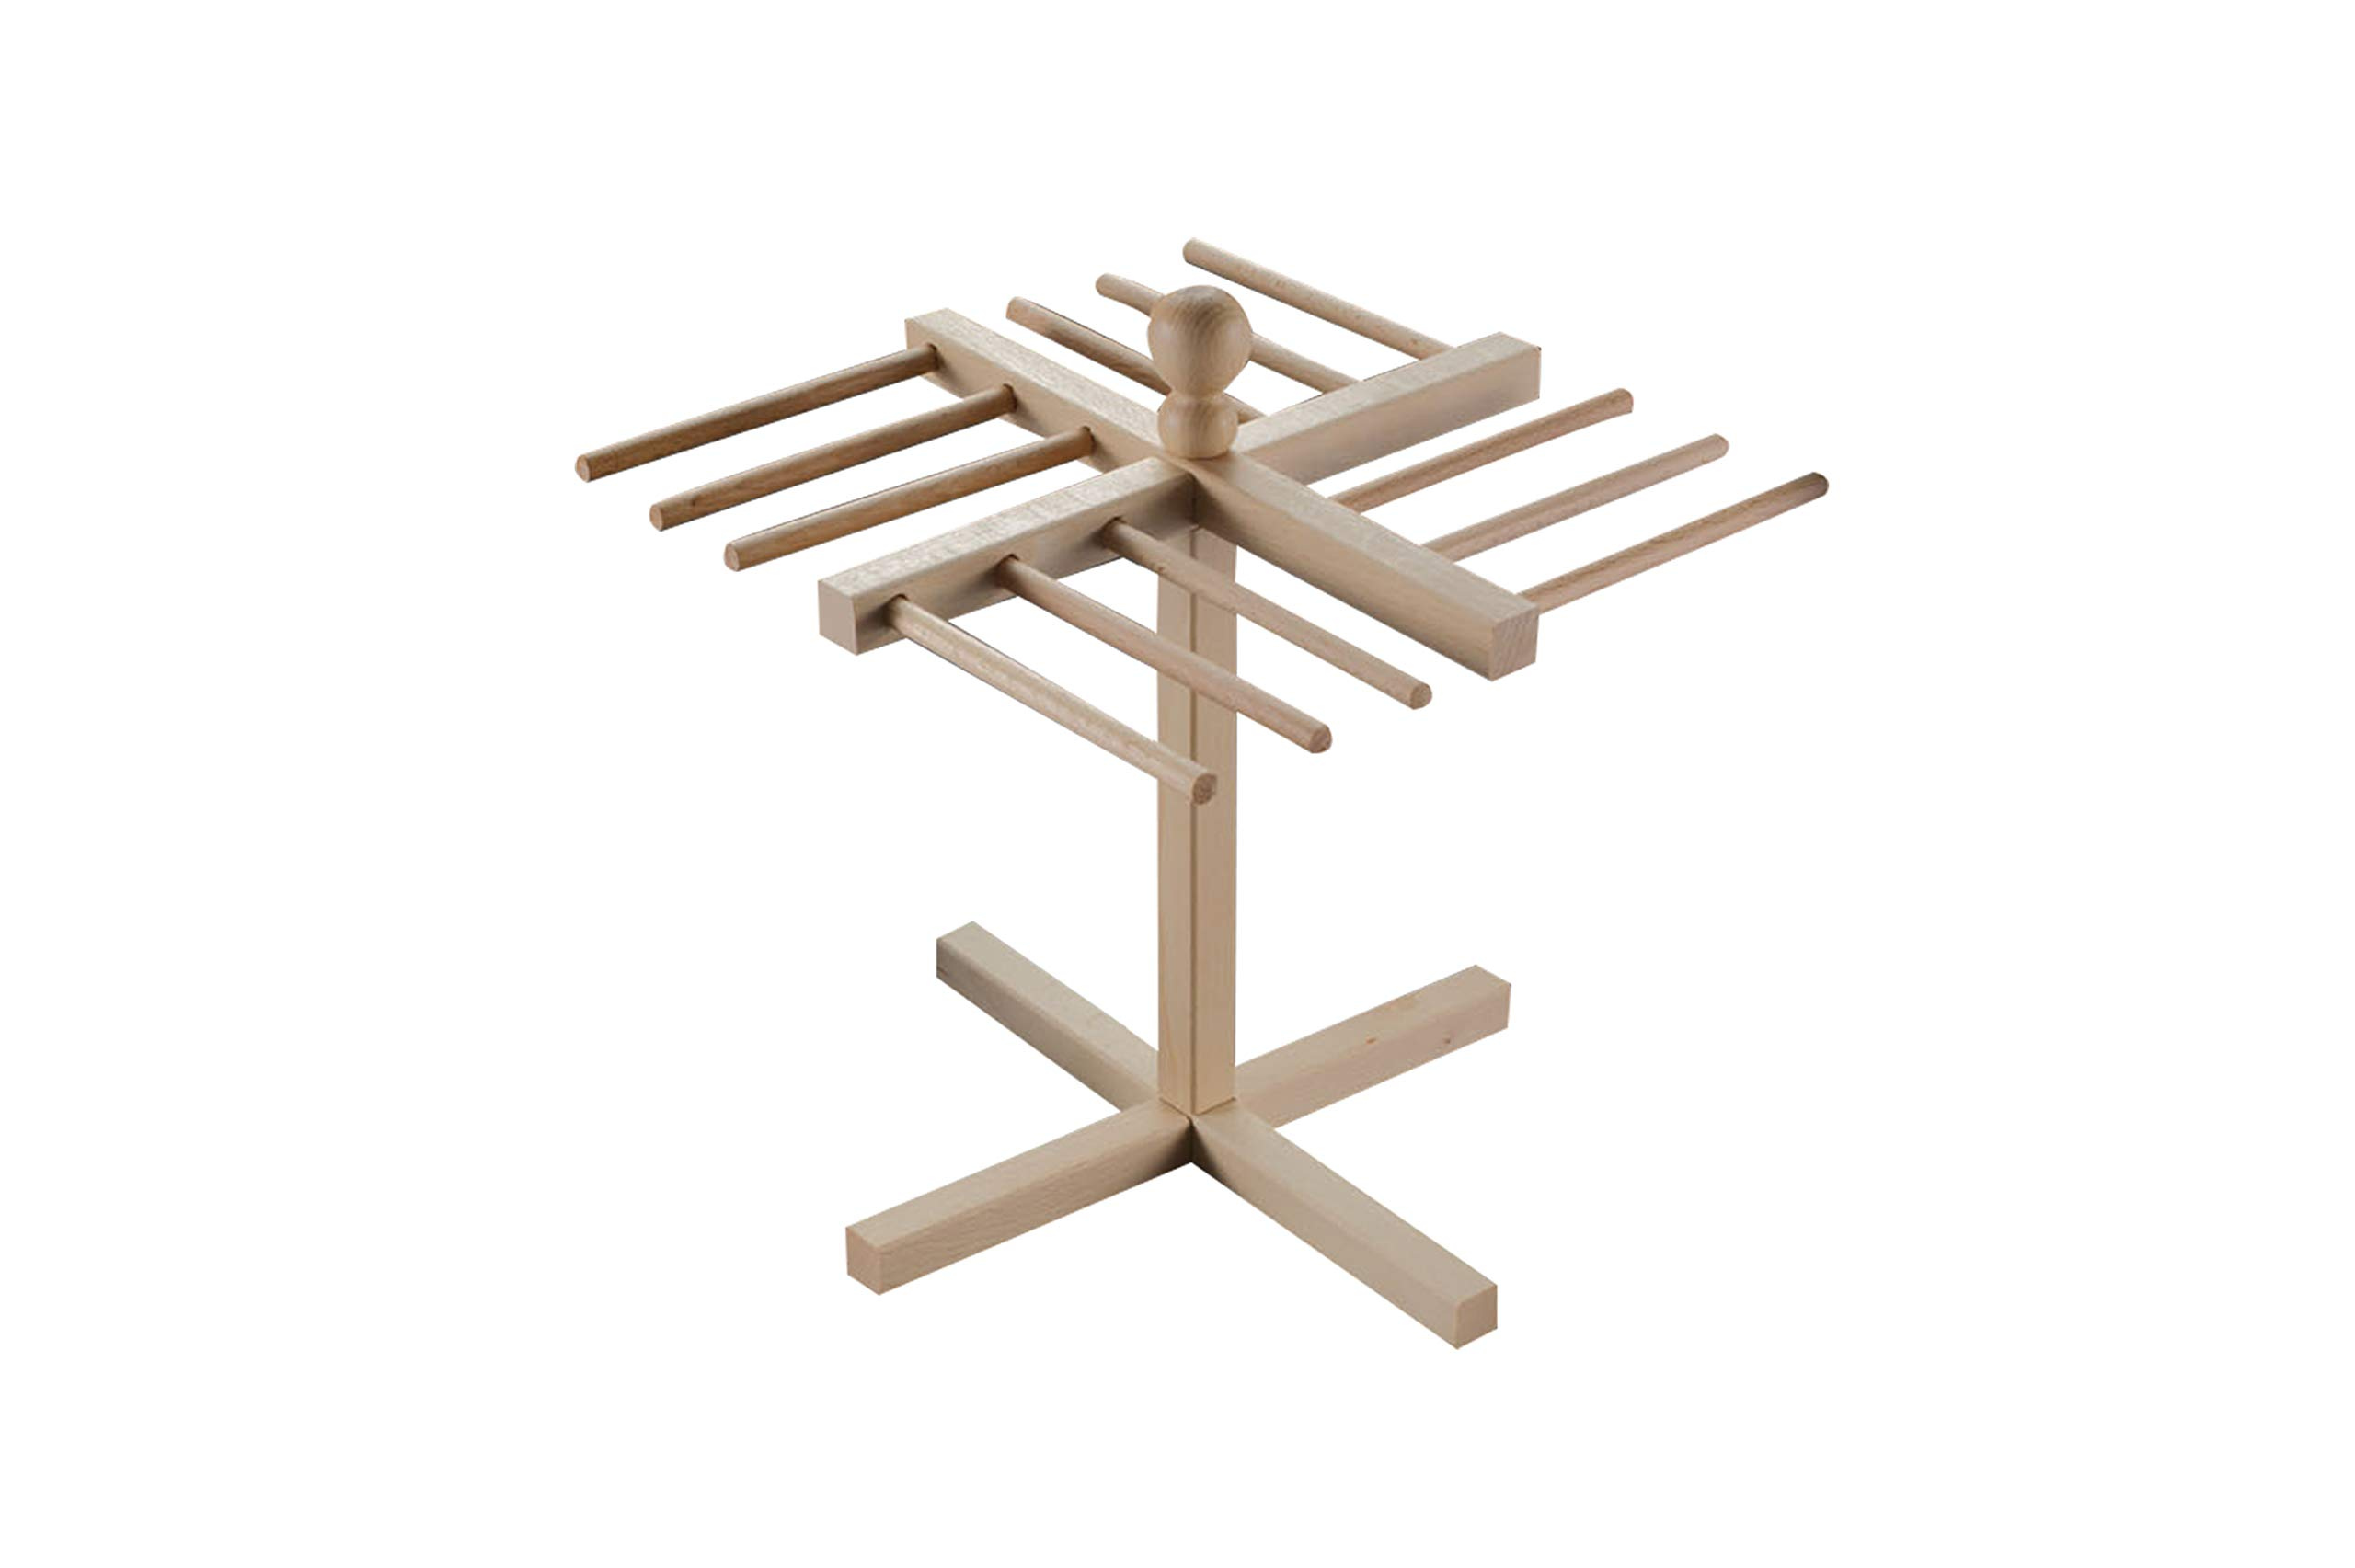 Pasta Drying Rack By Imperia - Made in Italy with Italian Beech Wood Construction - Holds 1lb of Pasta